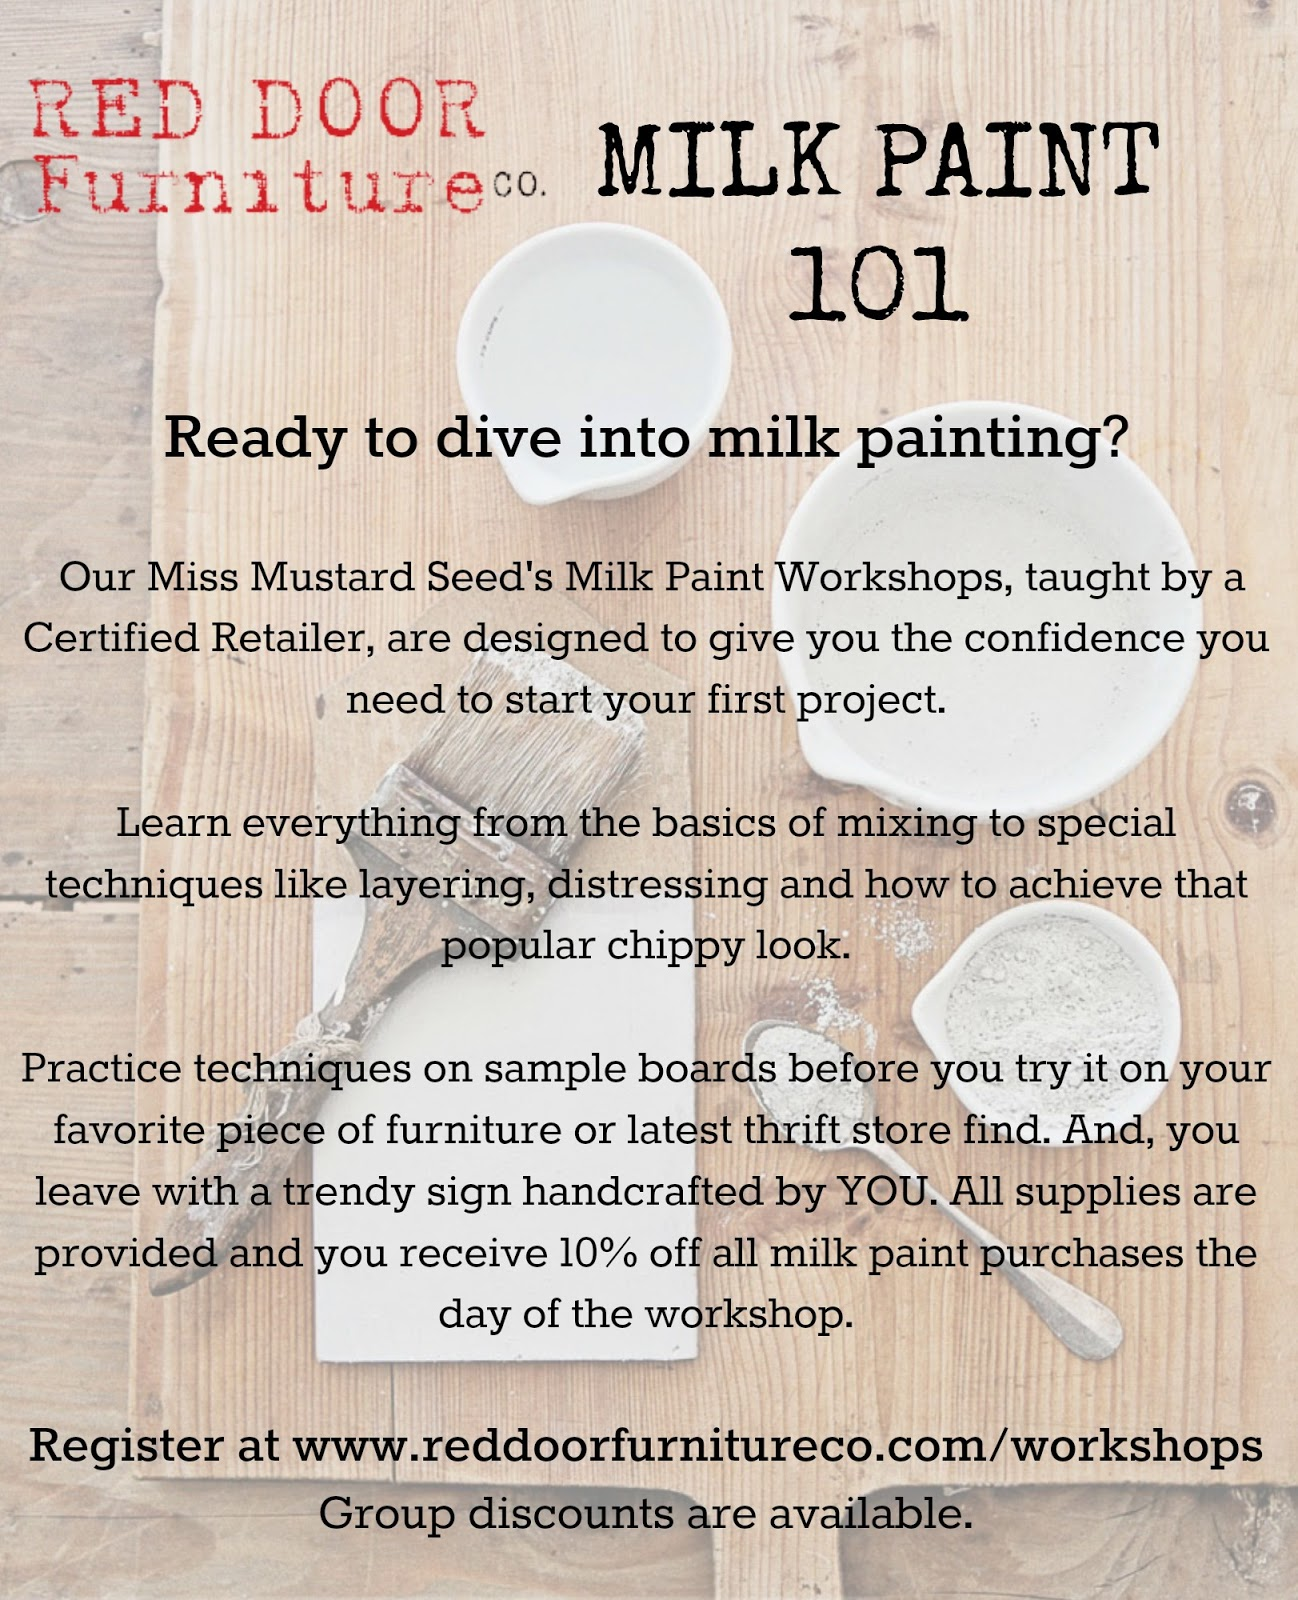 St. Louis Milk Paint Workshop